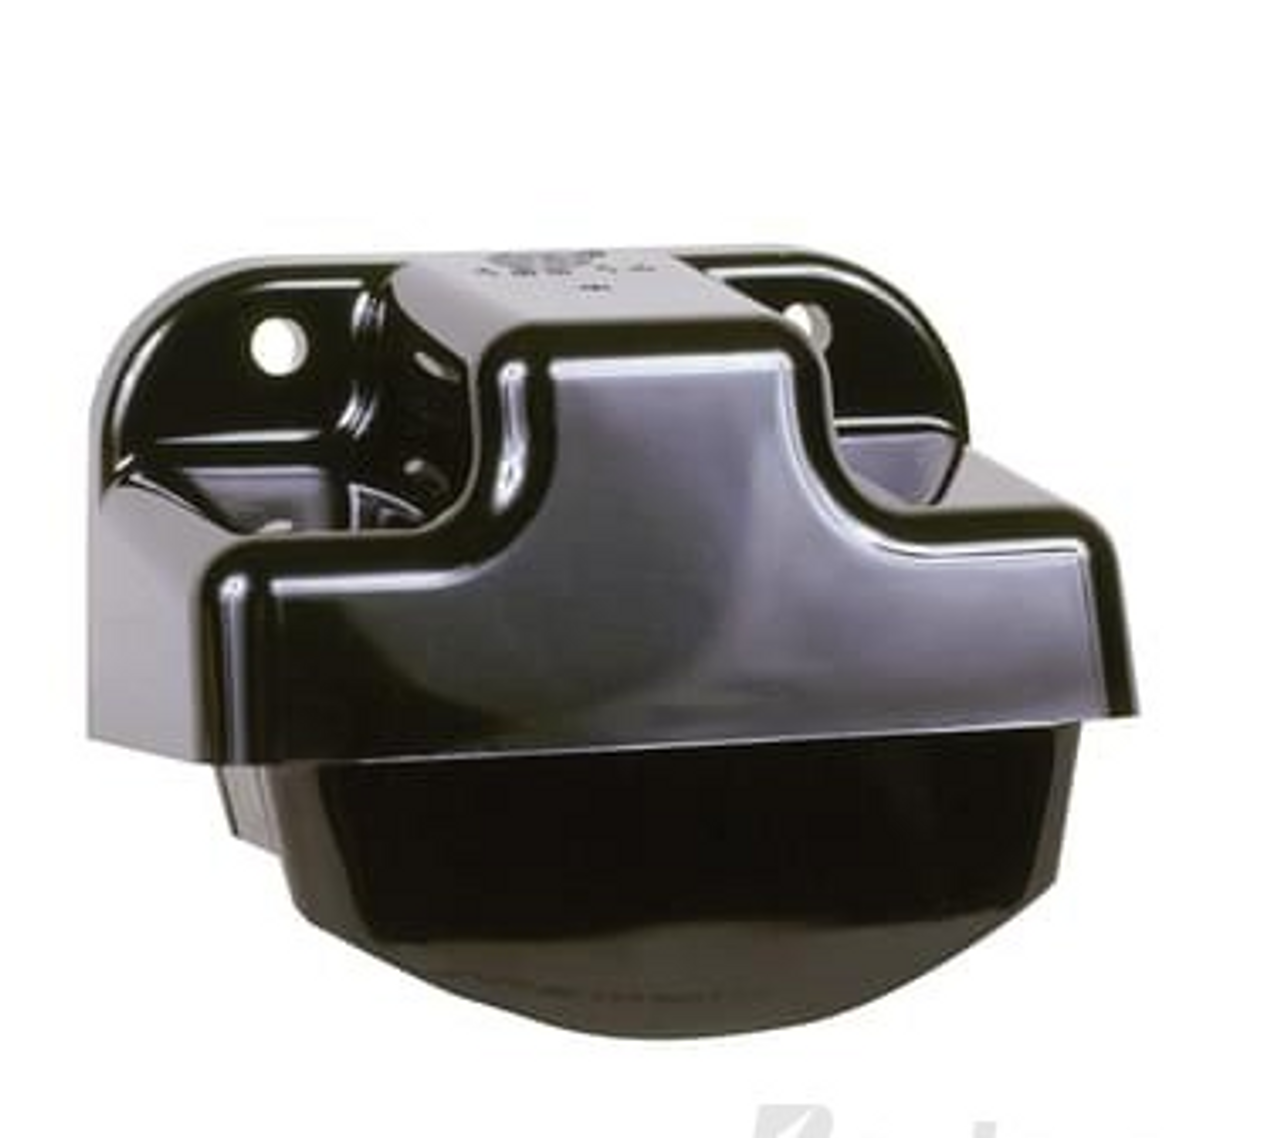 M153C-141 - Licence Plate Lamp. Surface Mount Black Body. Multi-volt. Water & Dust Proof. Peterson. RV. Ultimate LED.